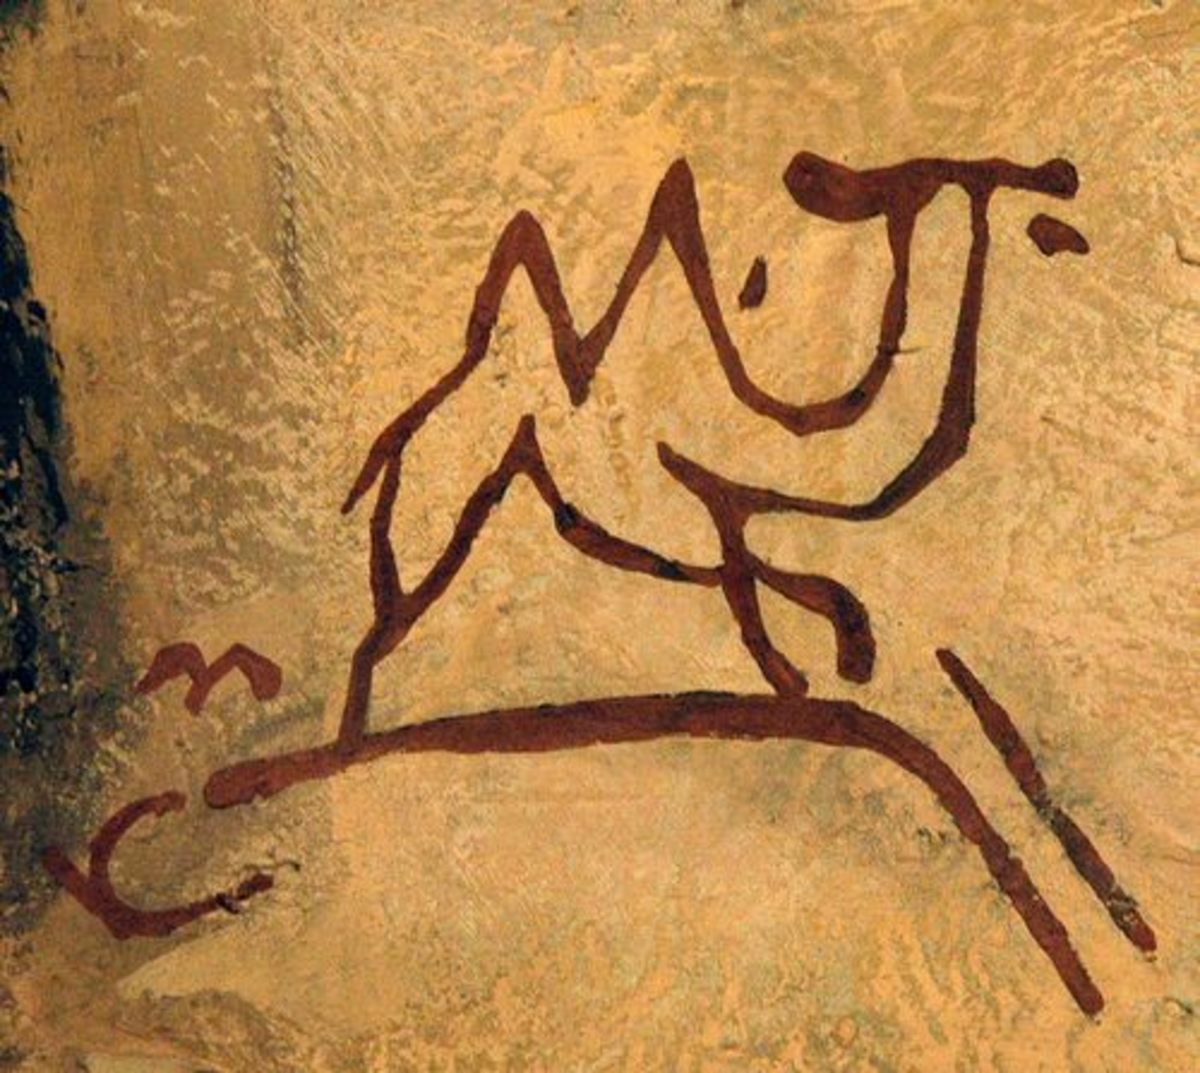 Pre-historic cave image of camel. Displayed in the National Museum of Mongolian History in Ulaan Baatar.